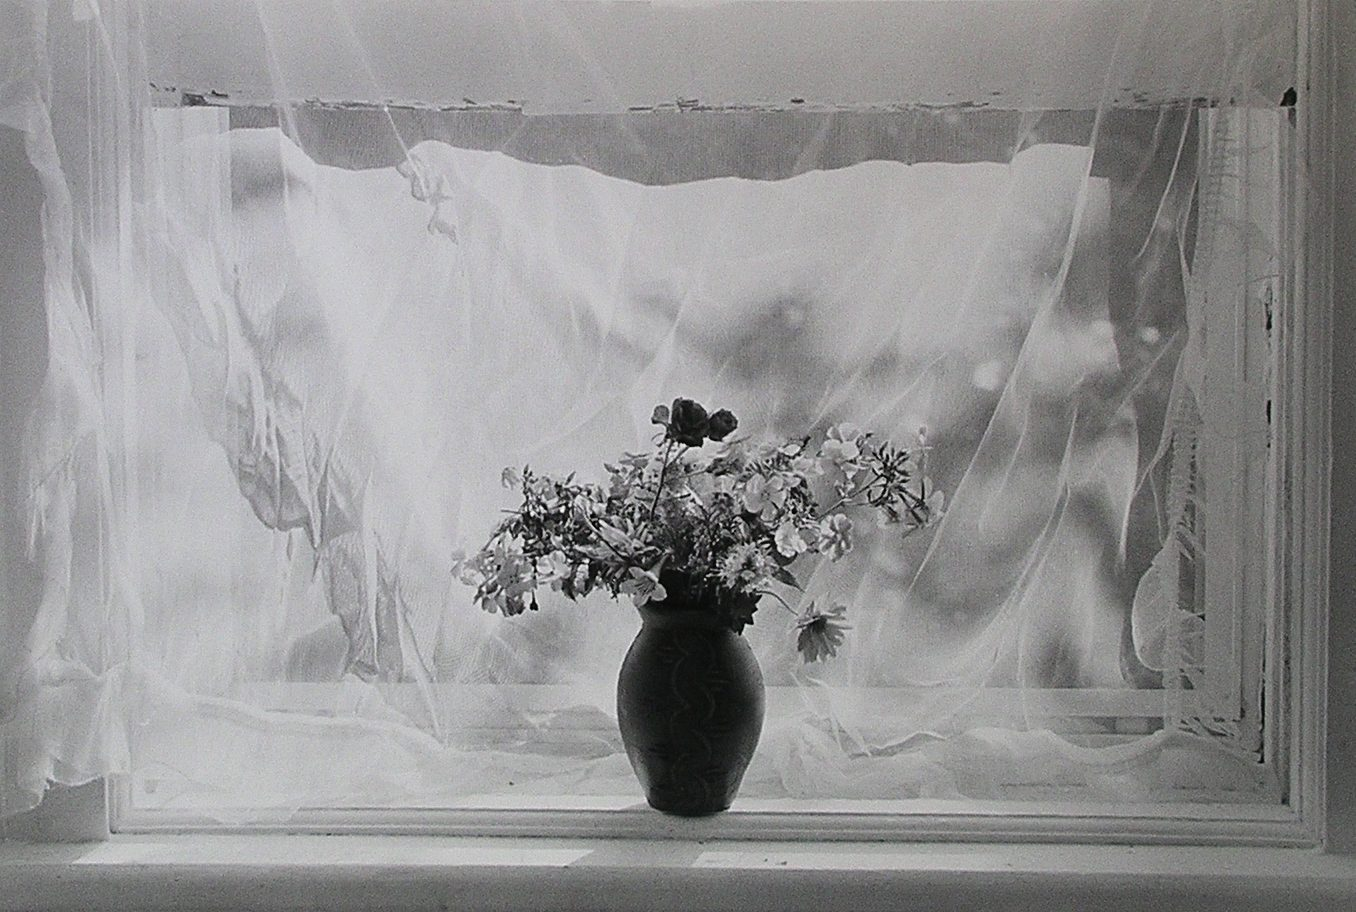 Flower in Vase in front of Window with Curtain